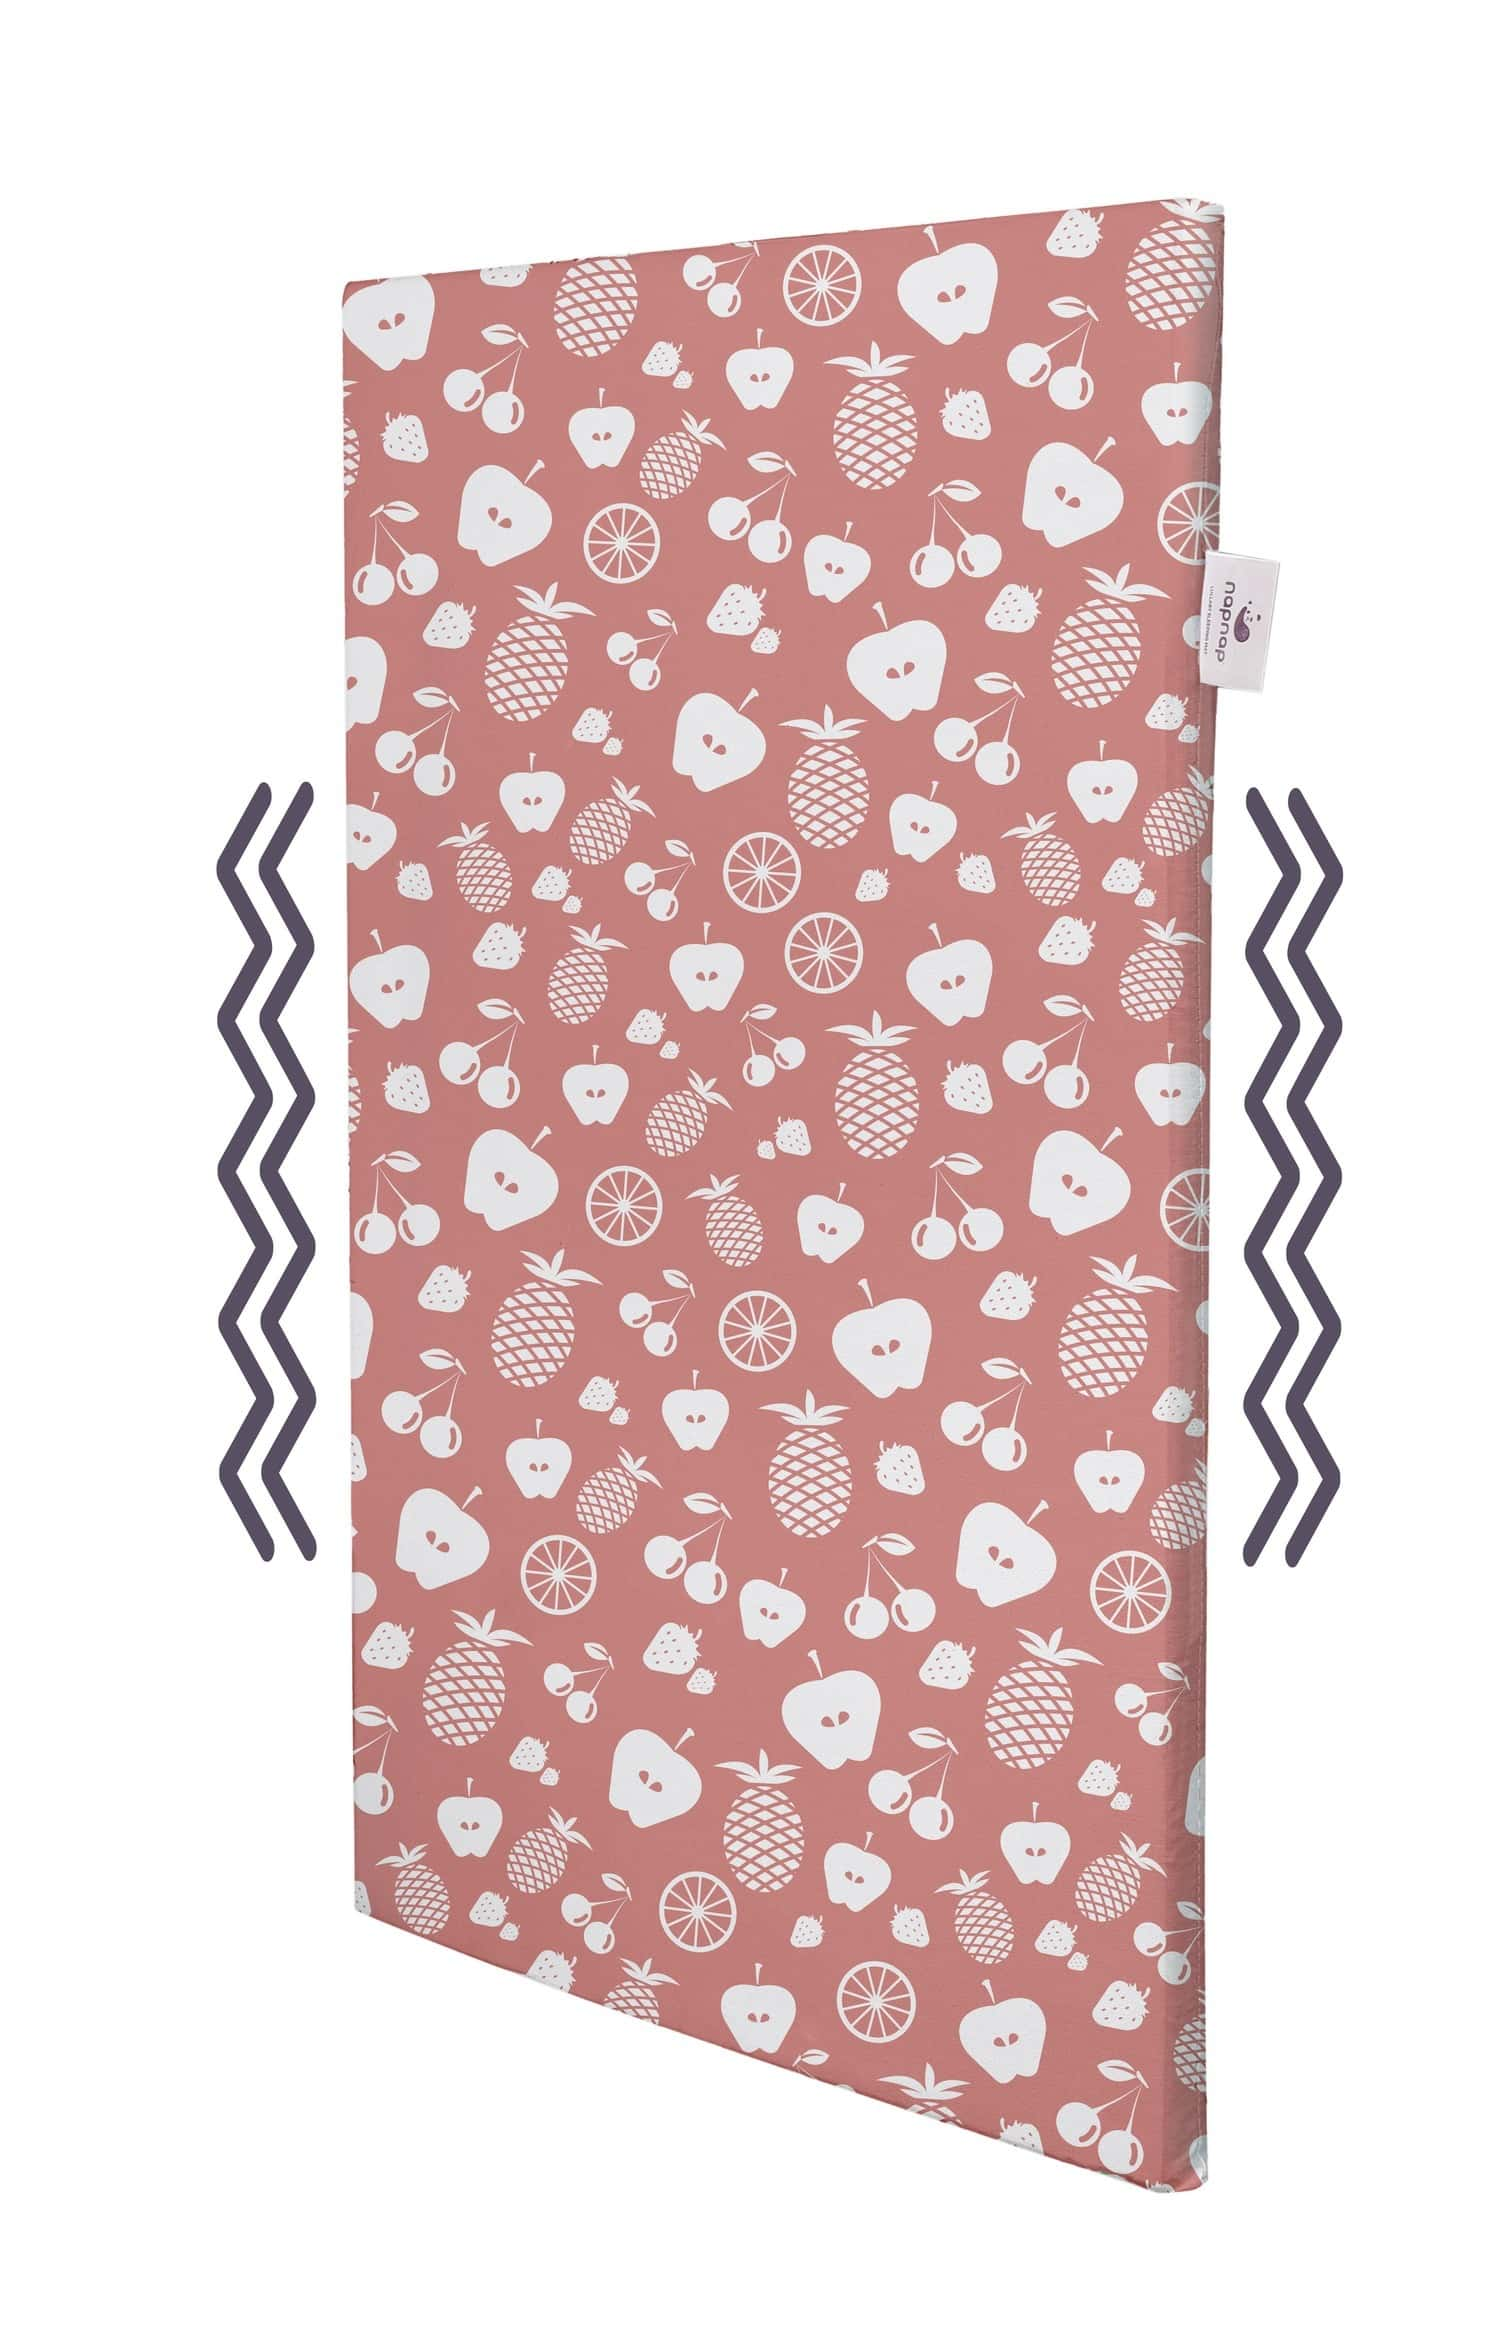 Napnap Portable Soothing Mat For New-borns And New Moms.- Very Berry